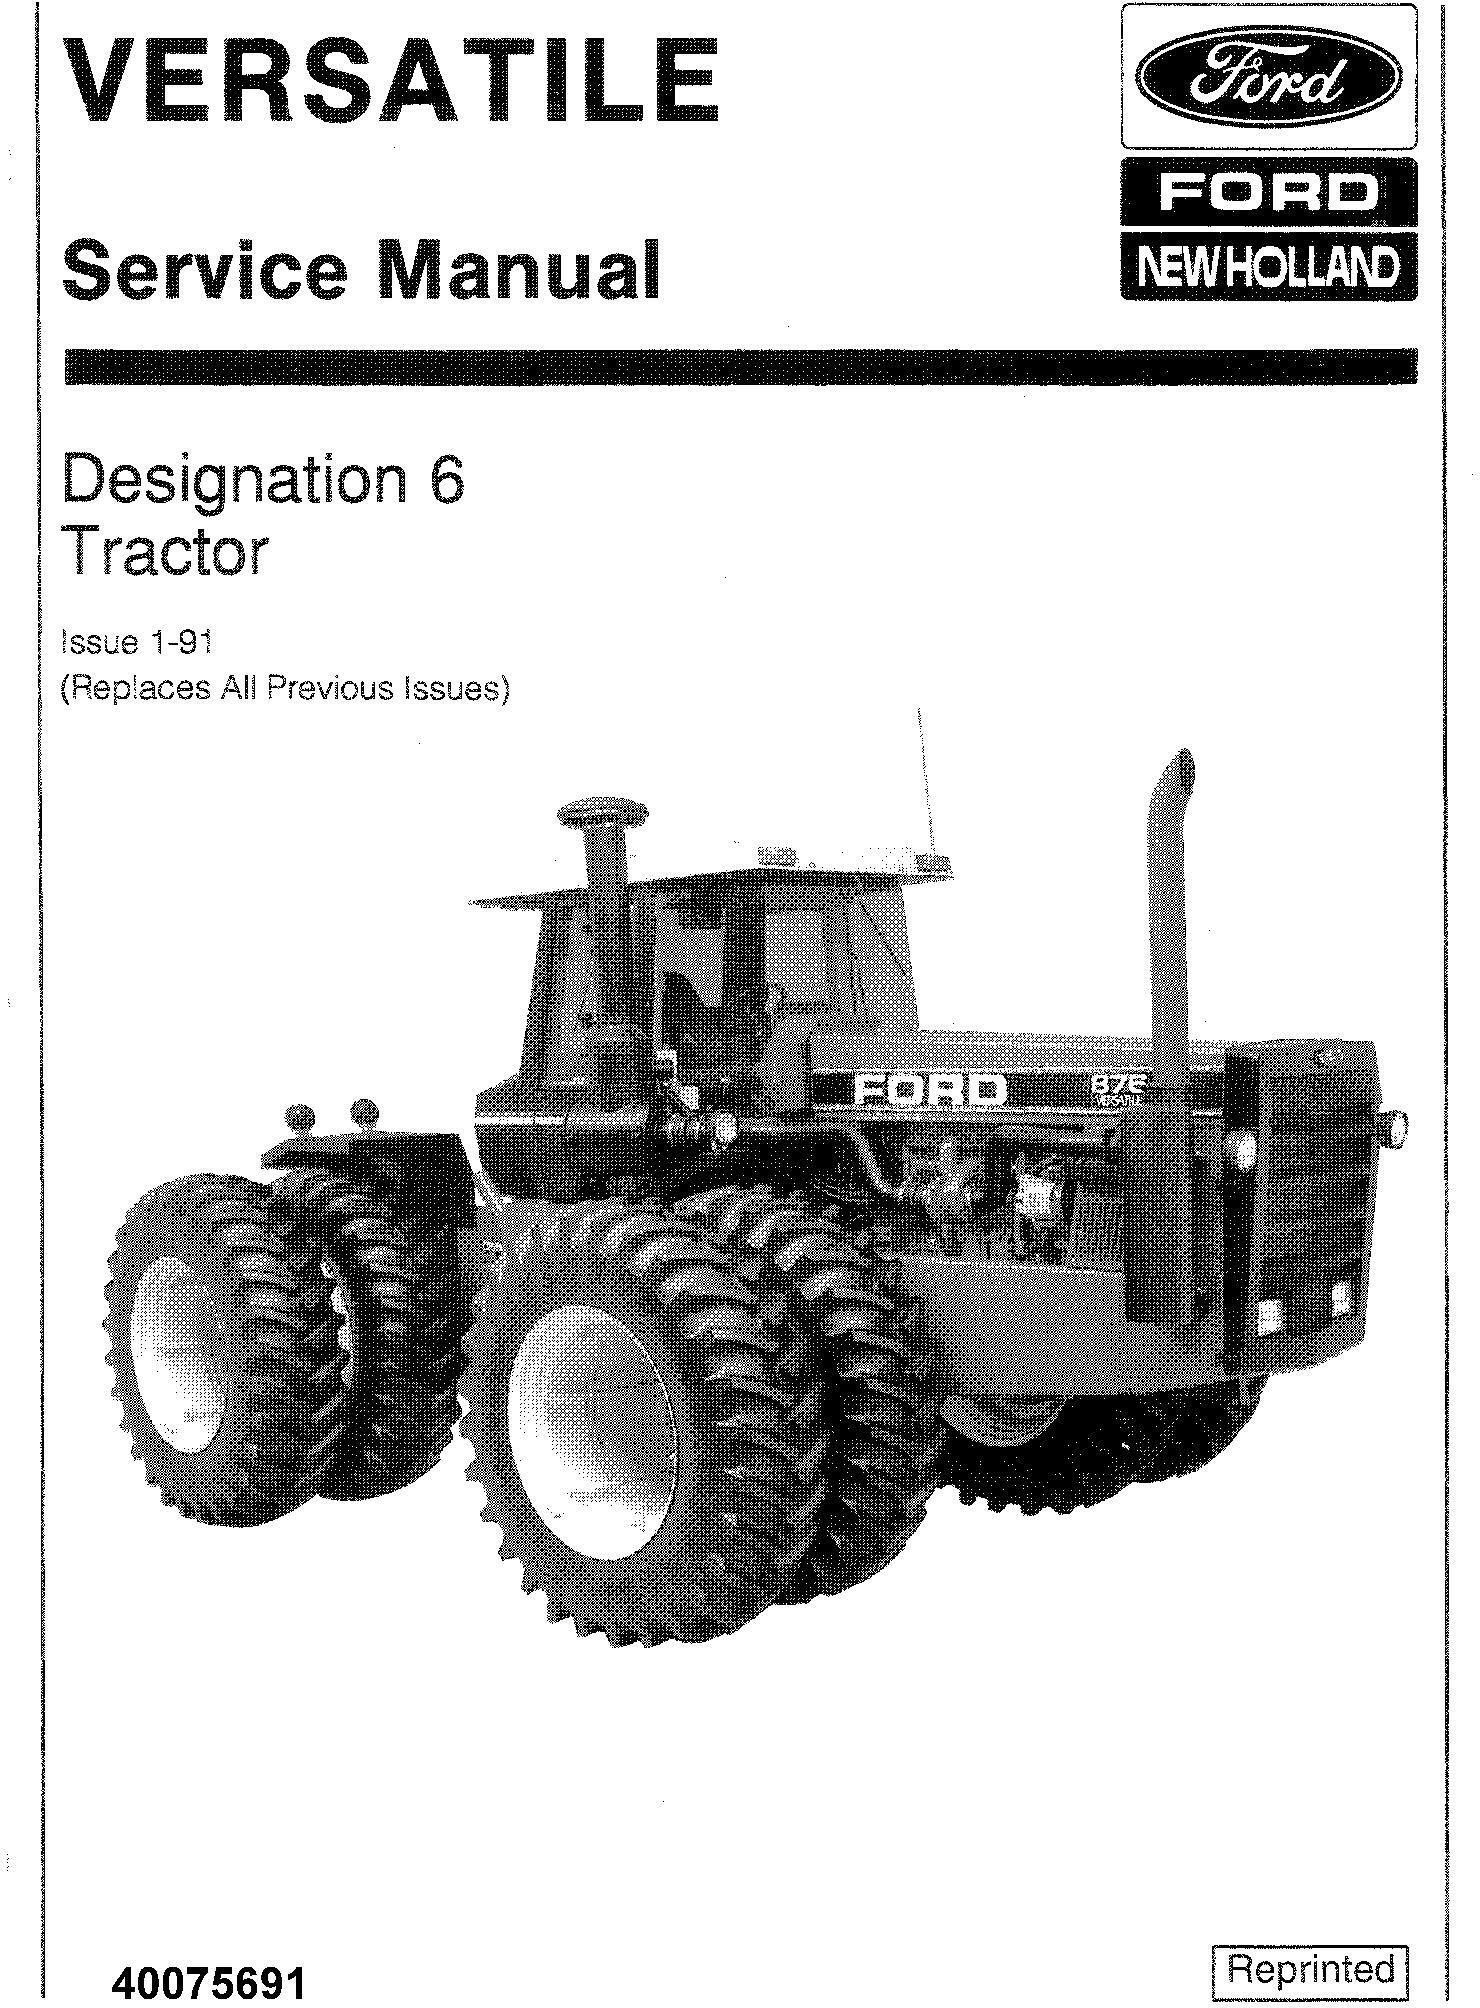 New Holland Ford Versatile 836 846 876 936 946 956